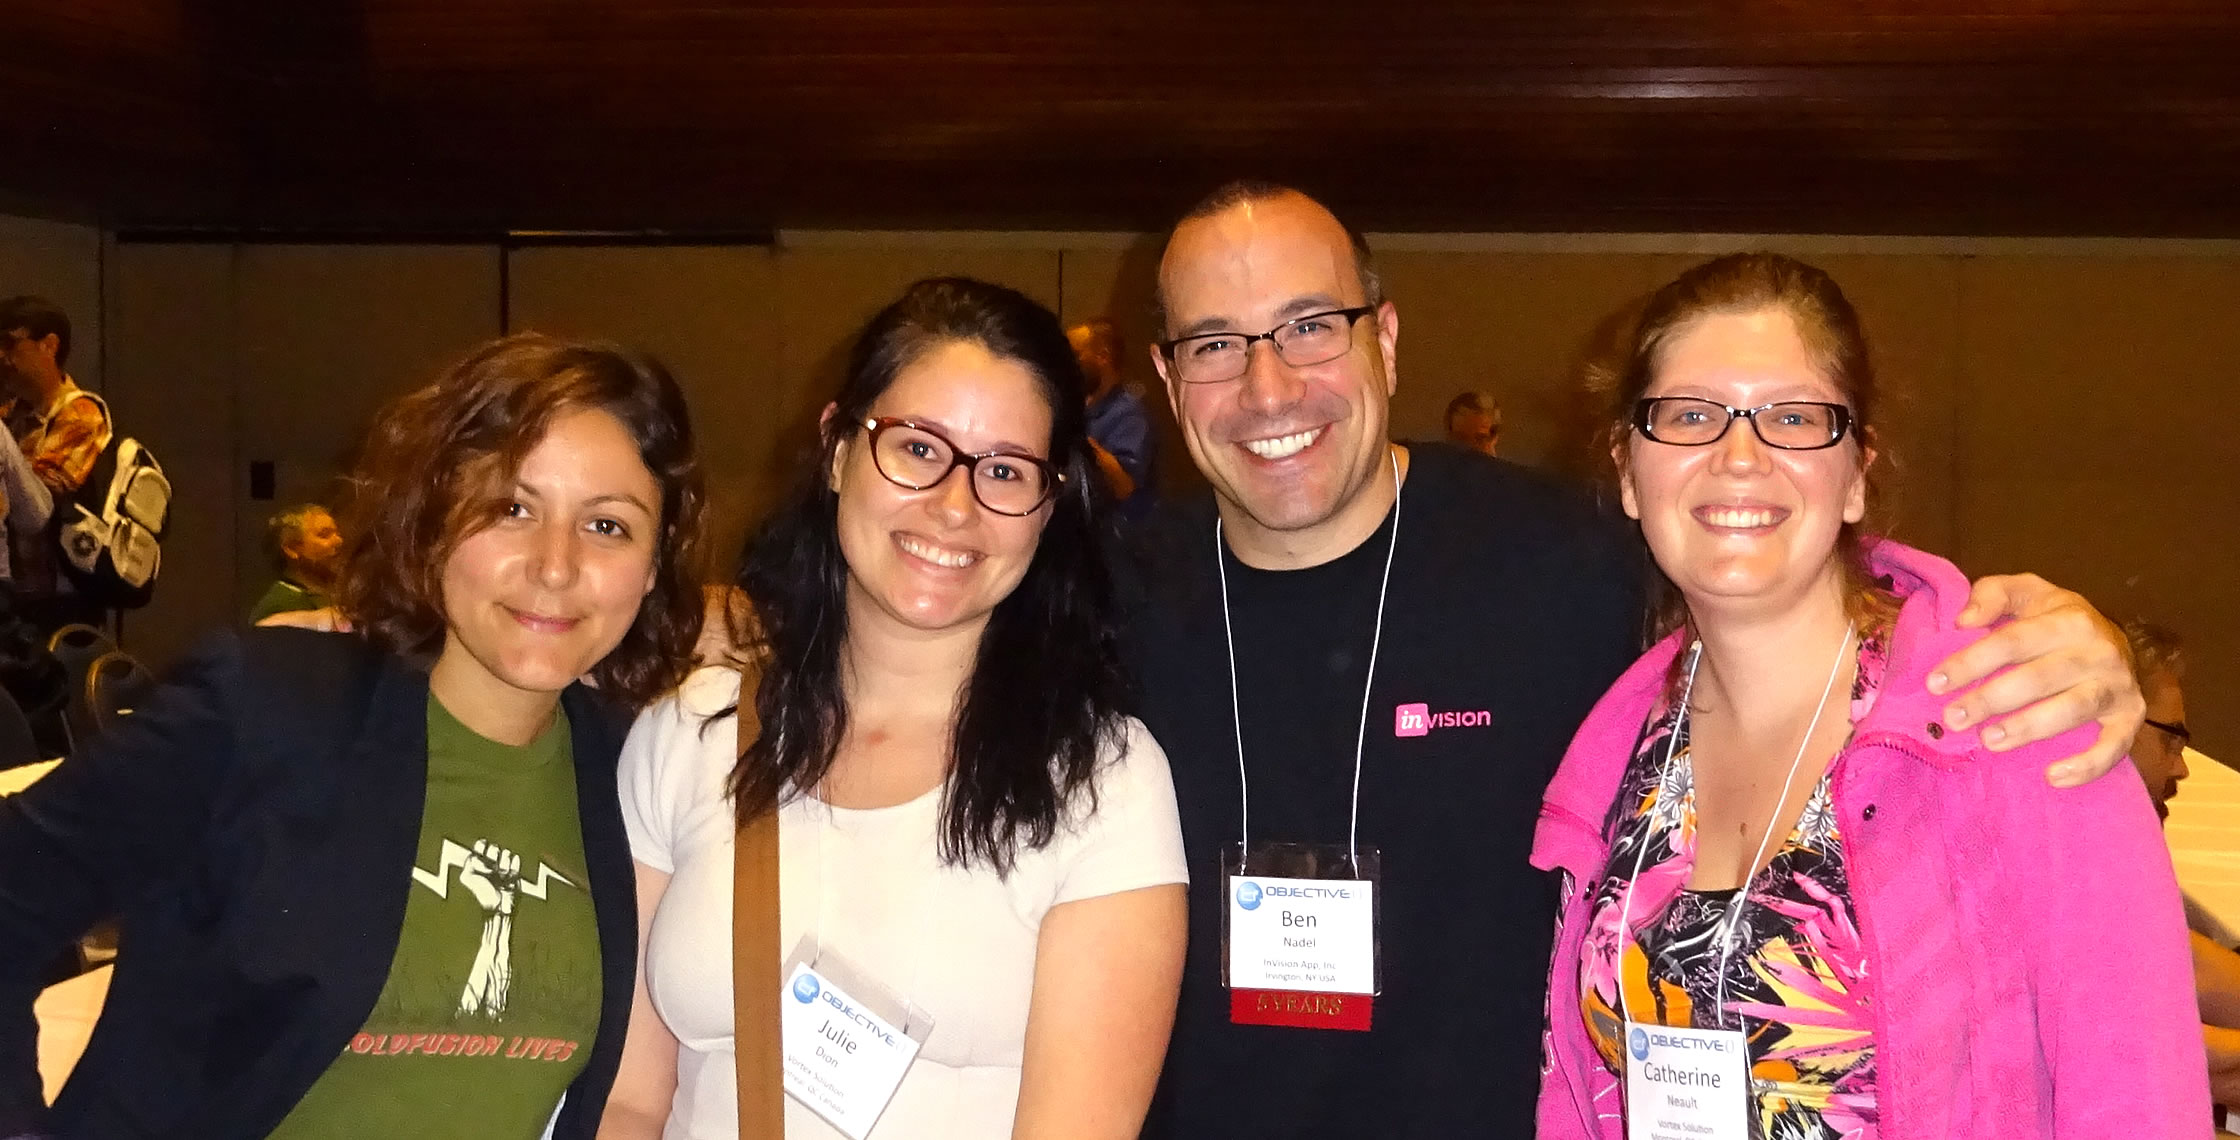 Ben Nadel at cf.Objective() 2017 (Washington, D.C.) with: Valerie Poreaux and Julie Dion and Catherine Neault